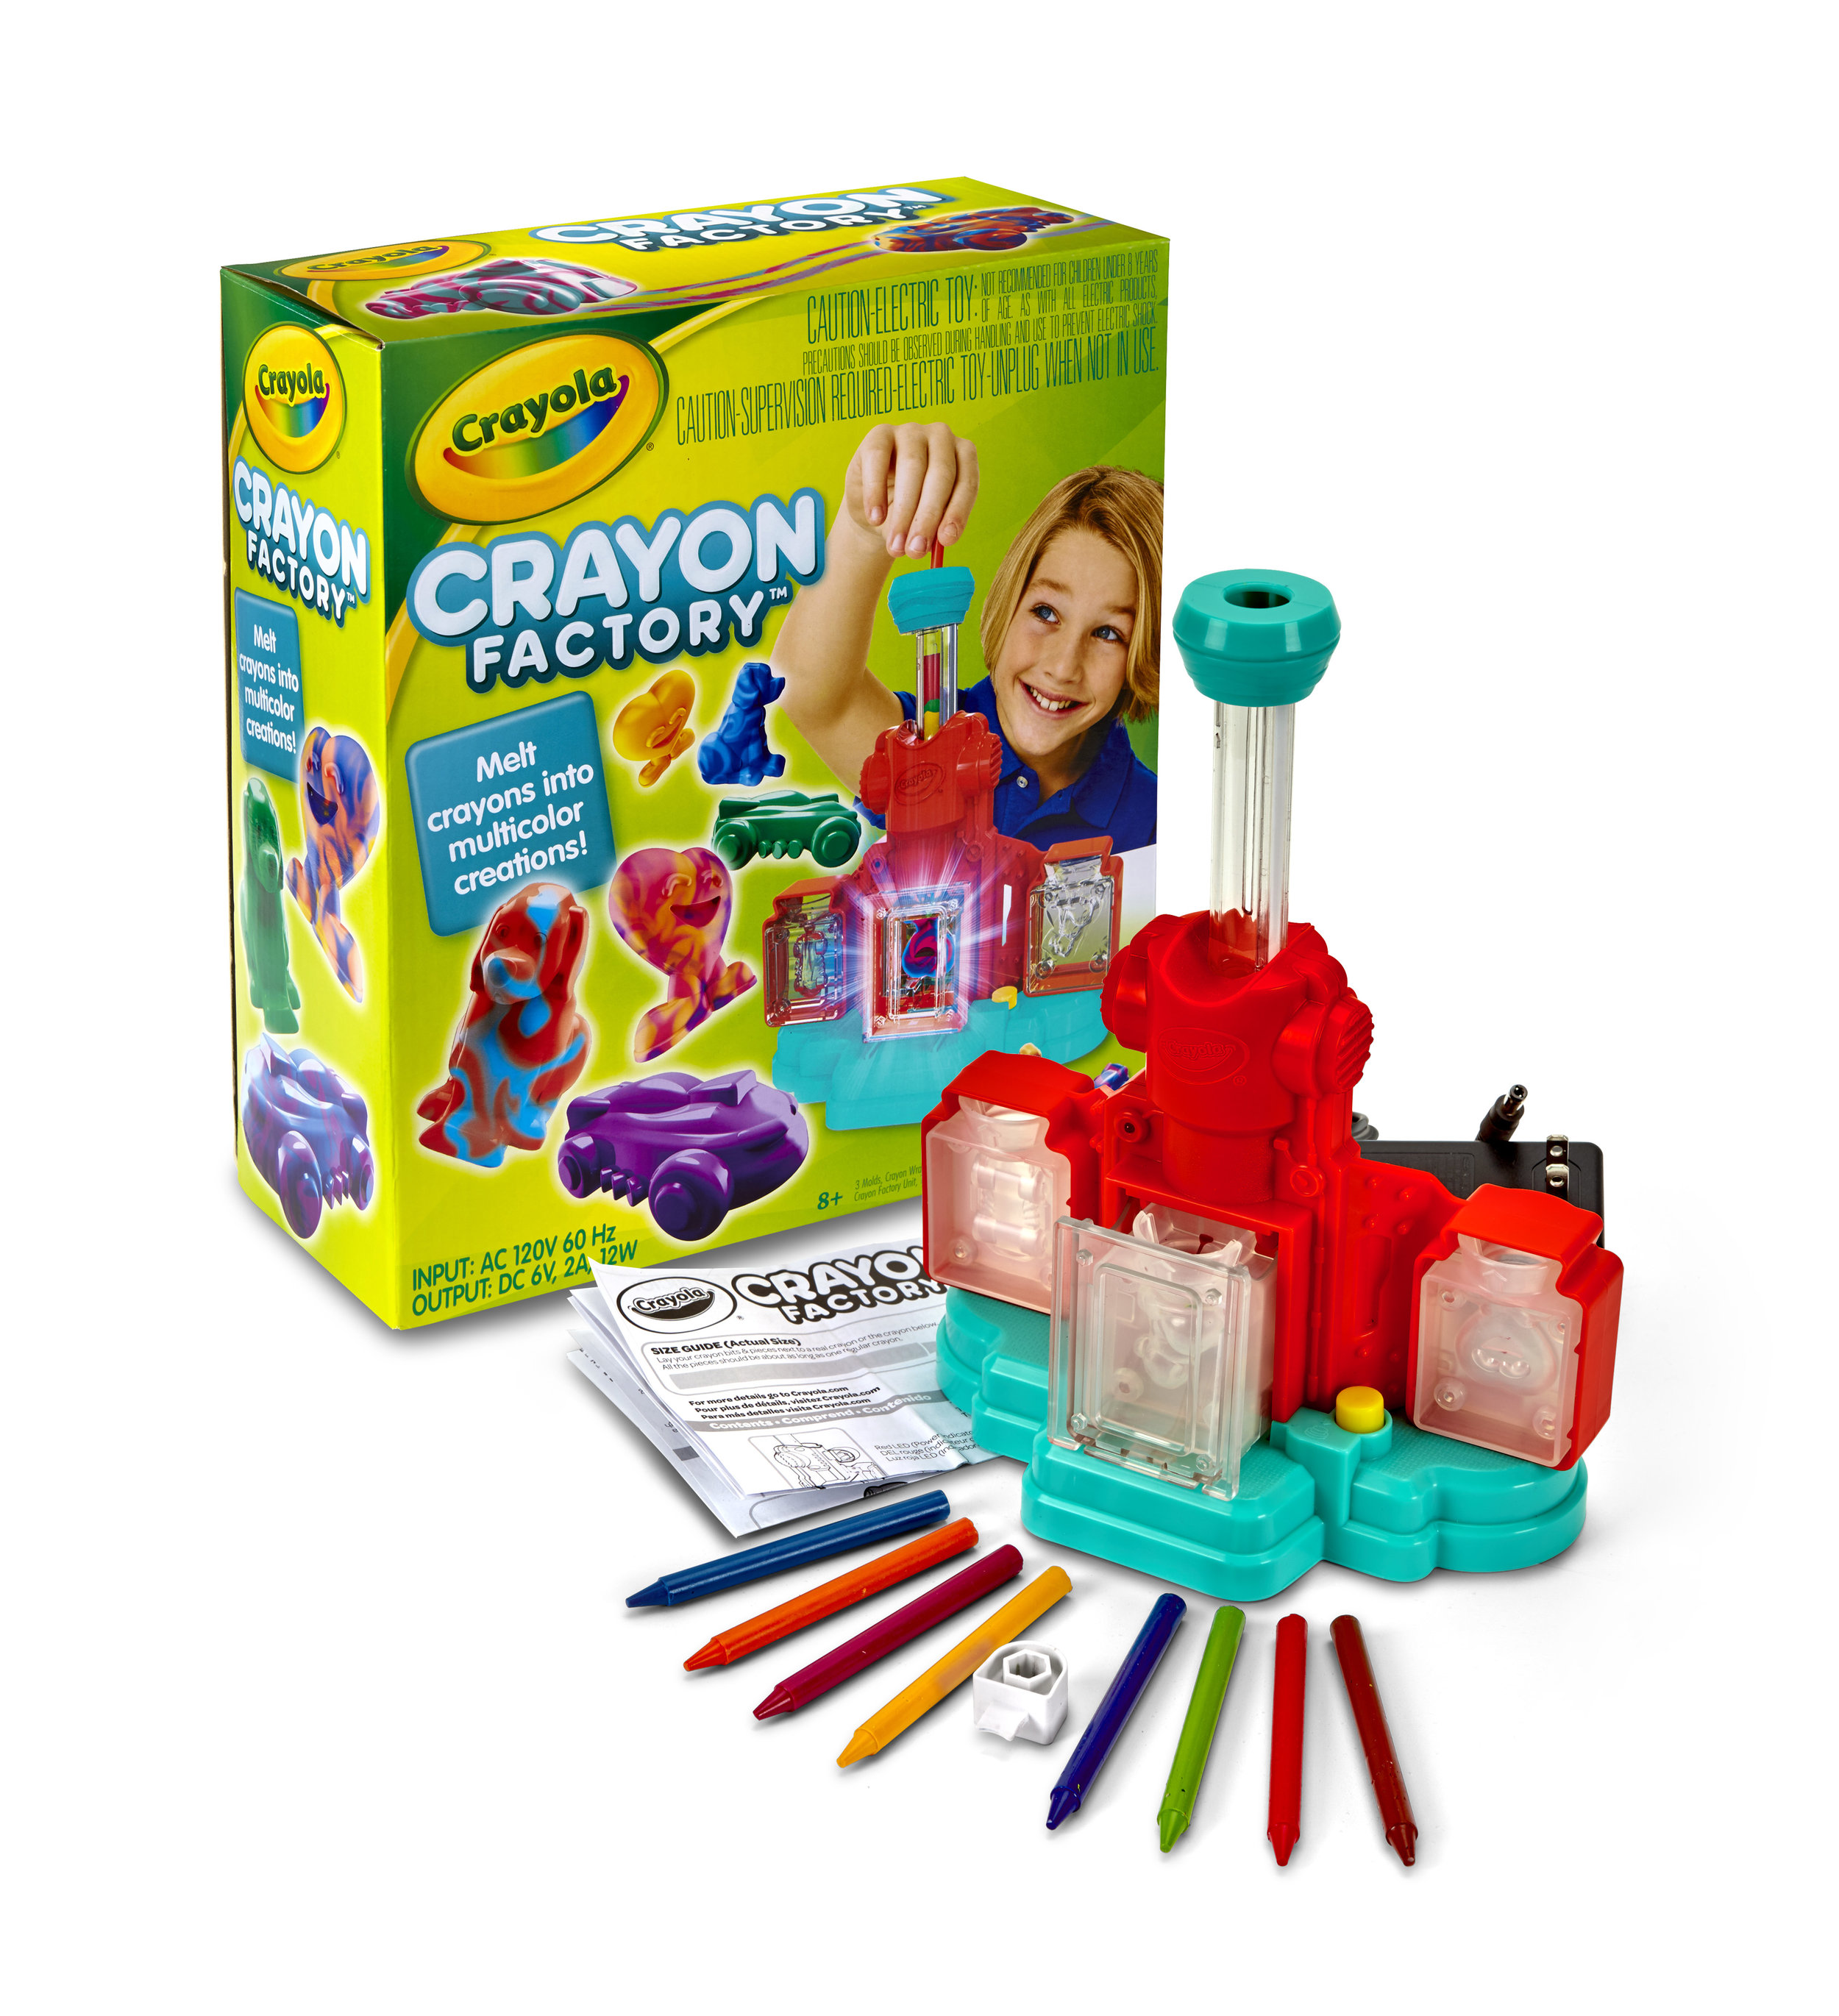 74-7211-0_Product_Toy_Makers_Crayon Factory_H.jpg